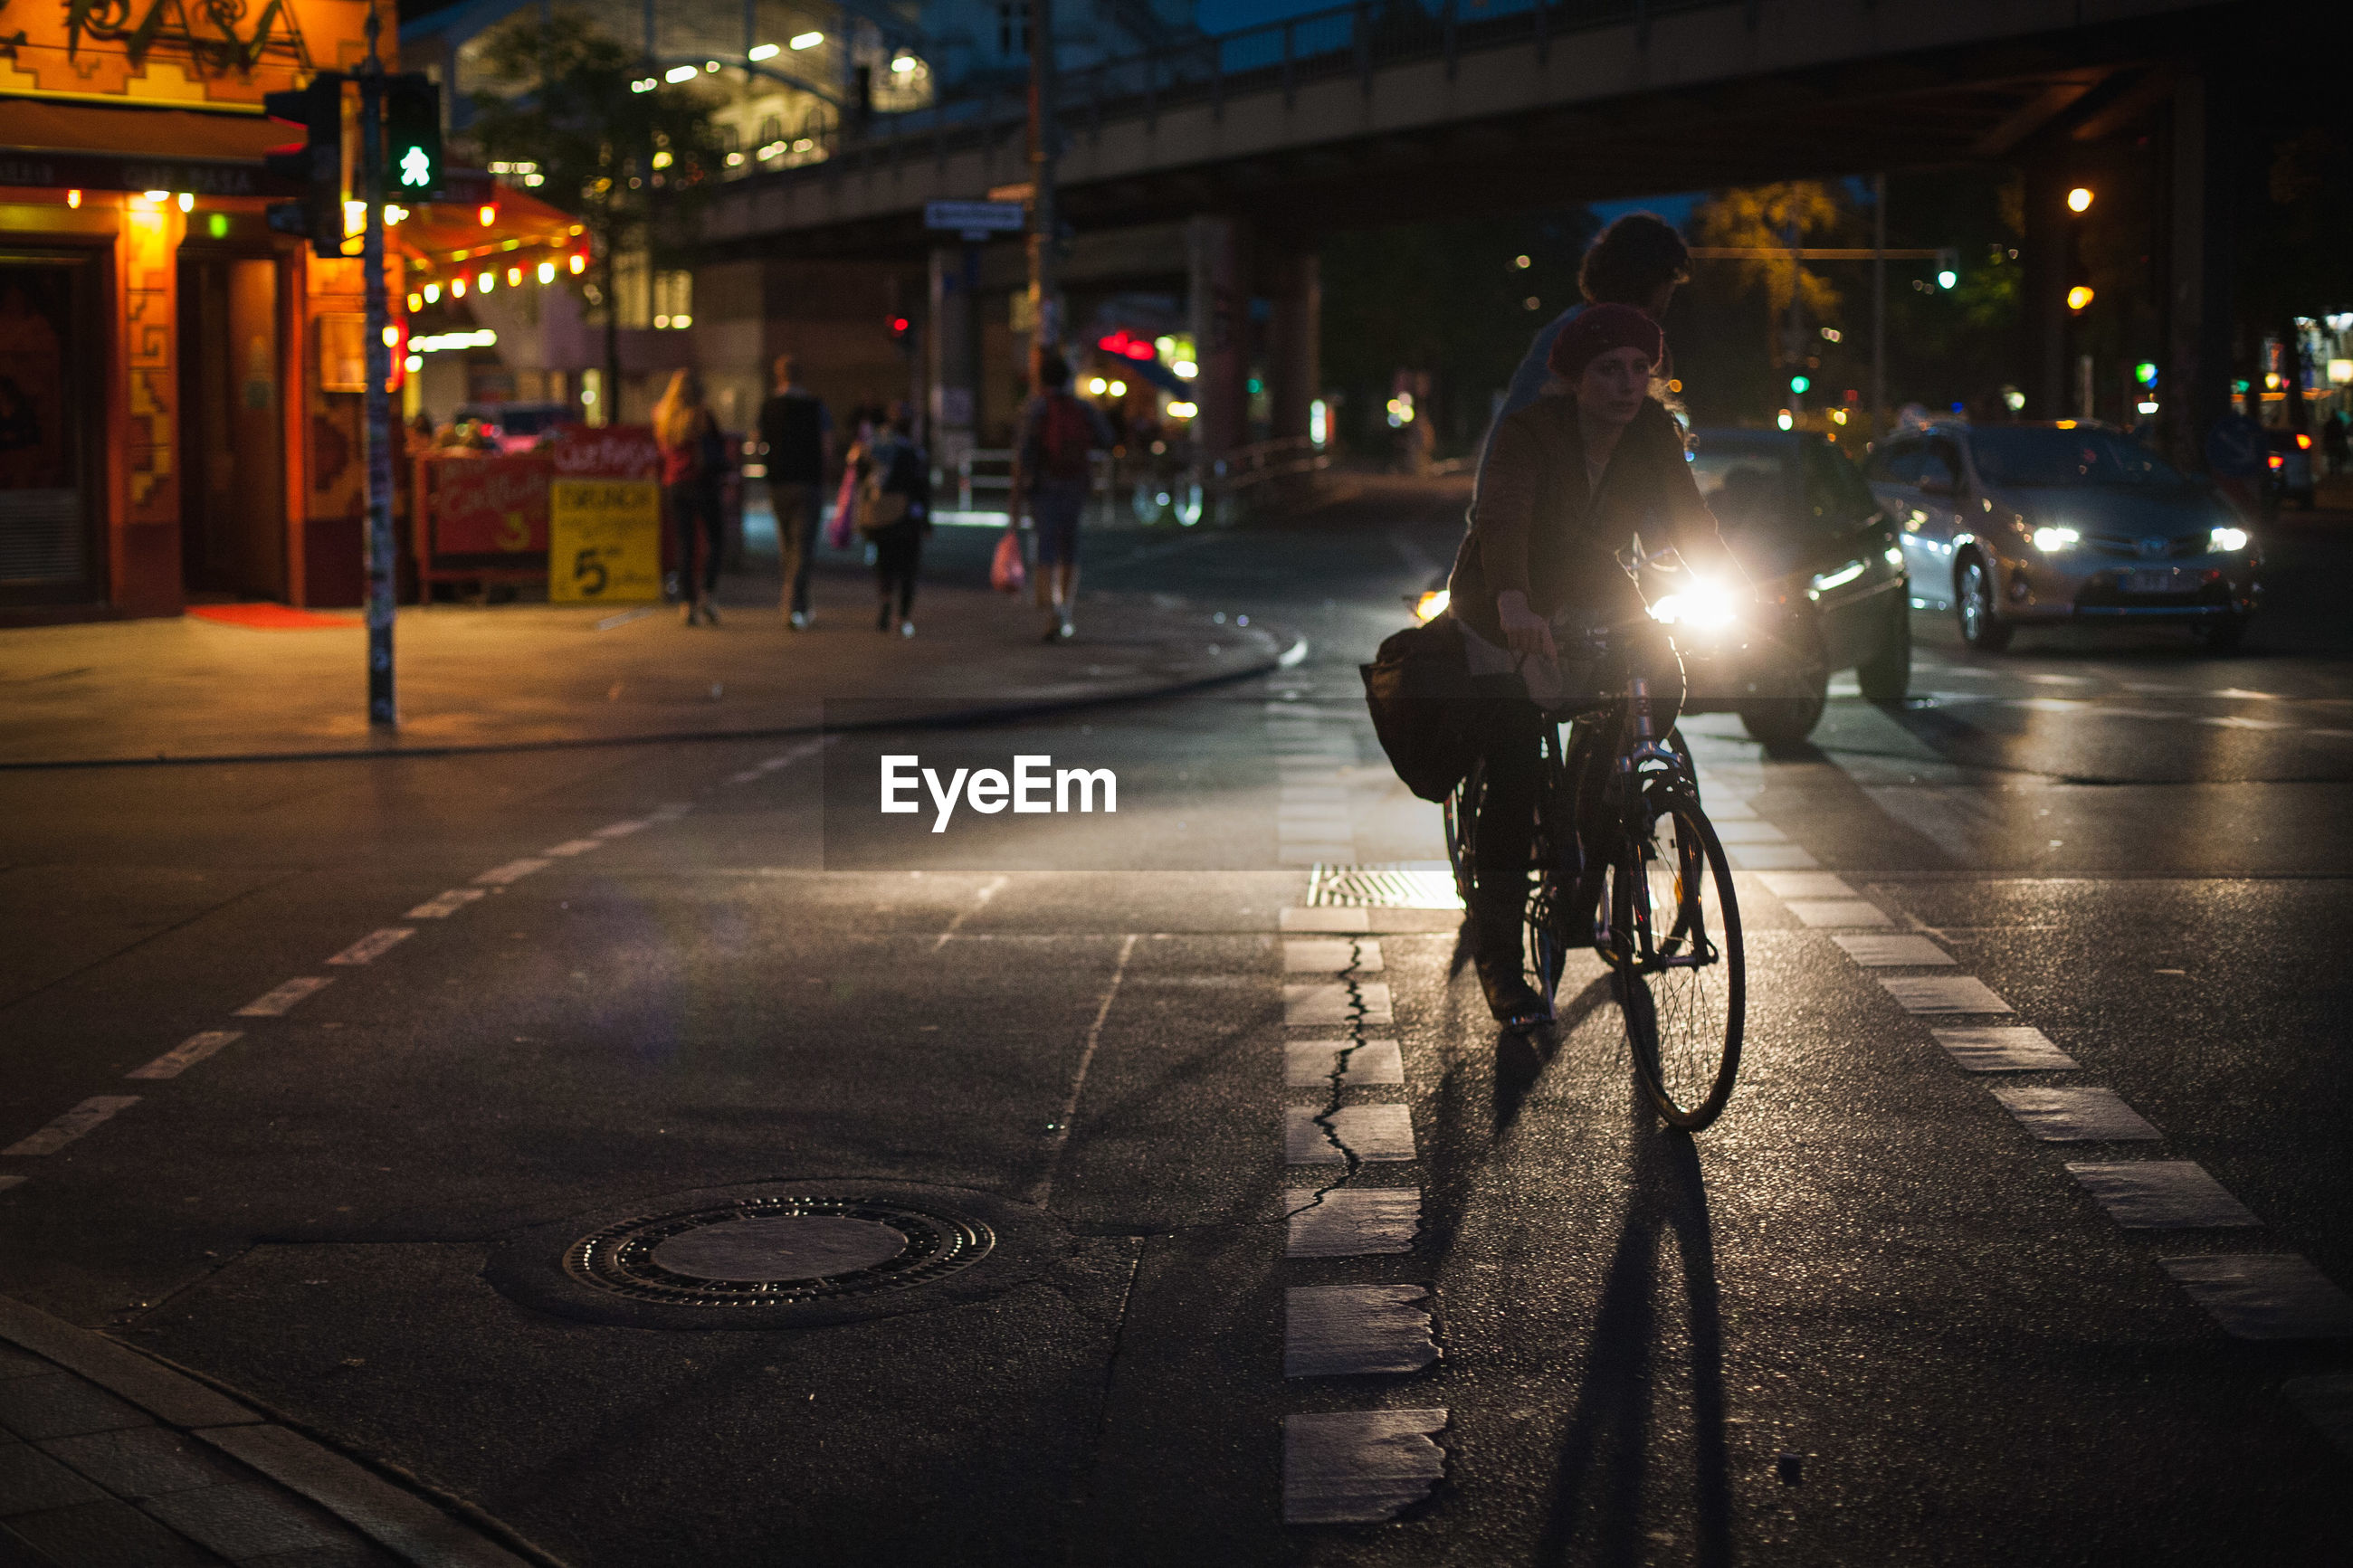 PEOPLE RIDING BICYCLES ON ROAD AT NIGHT